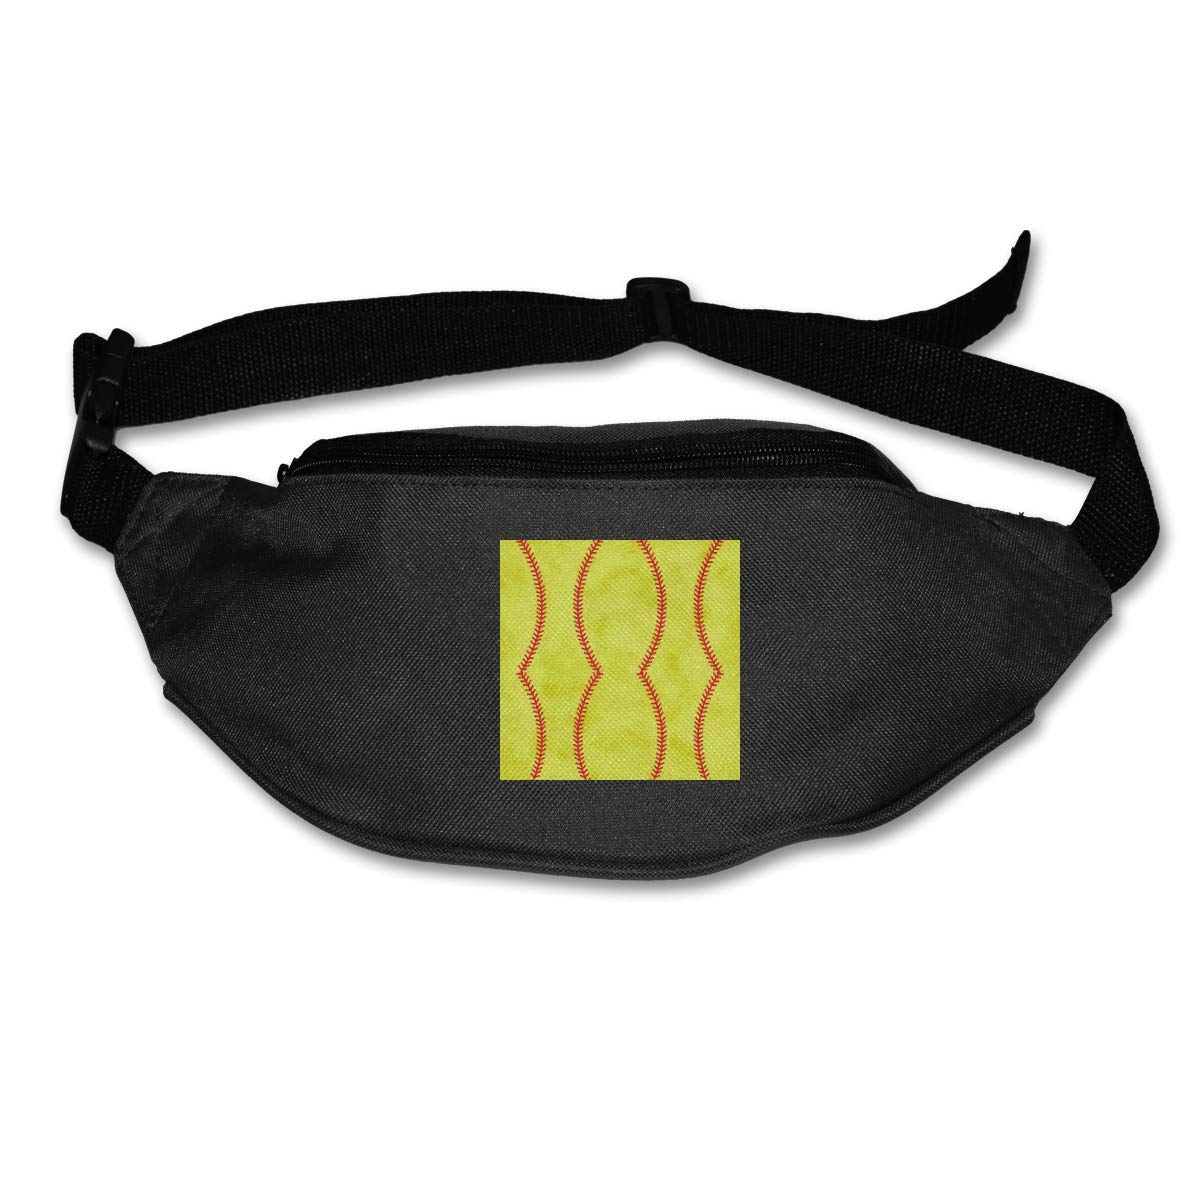 Yellow and Red Canvas Running Waist Pack Bag Travel Sports Money Holder